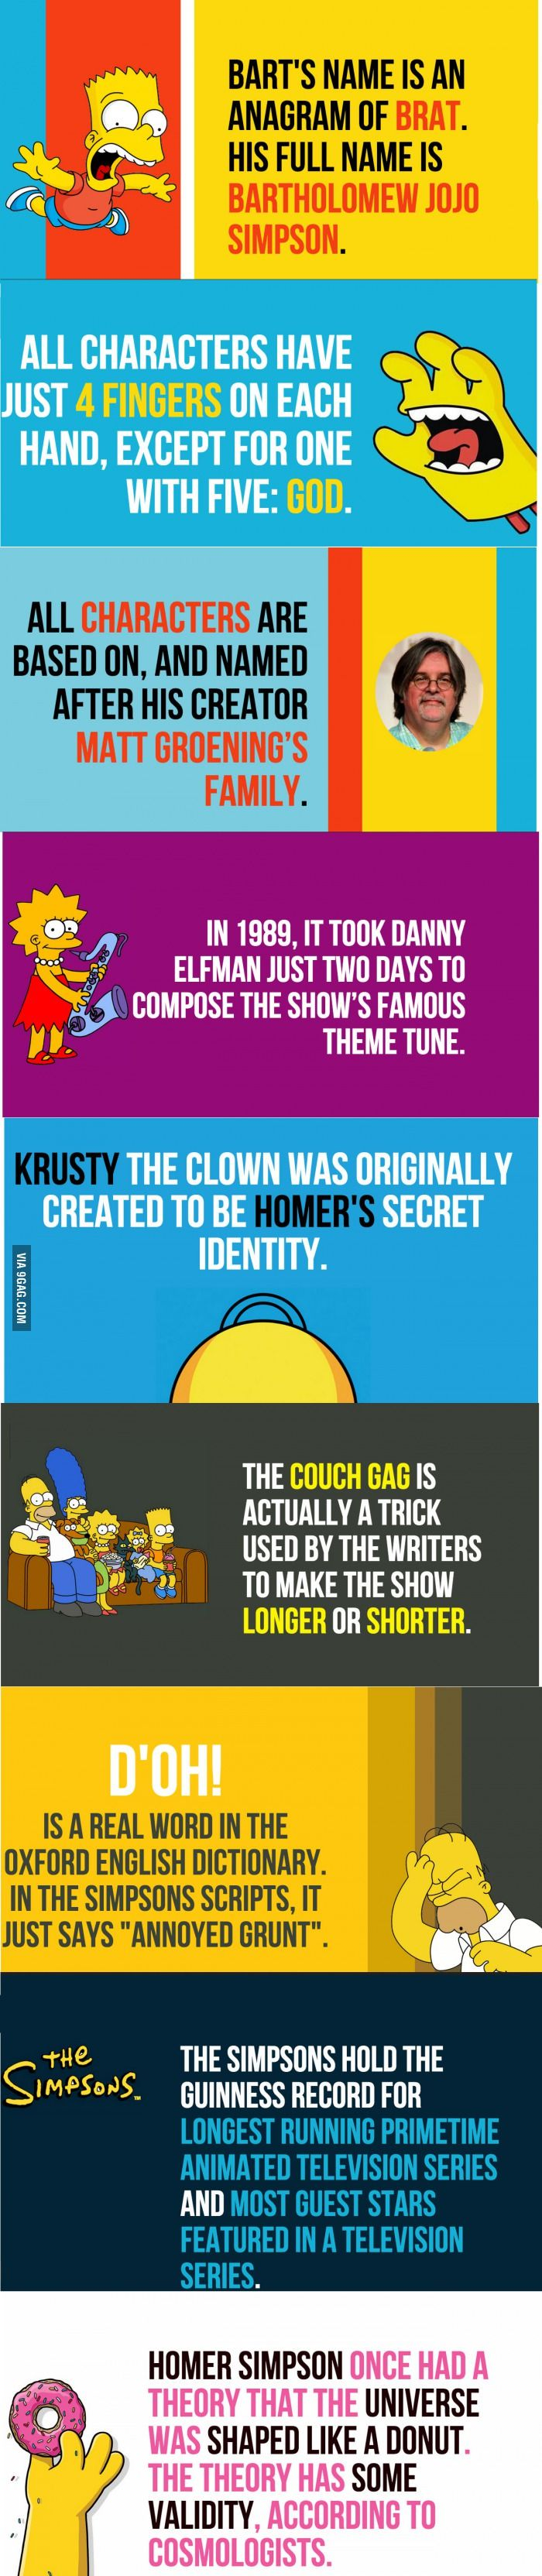 Some Facts About The Simpsons You Never Knew